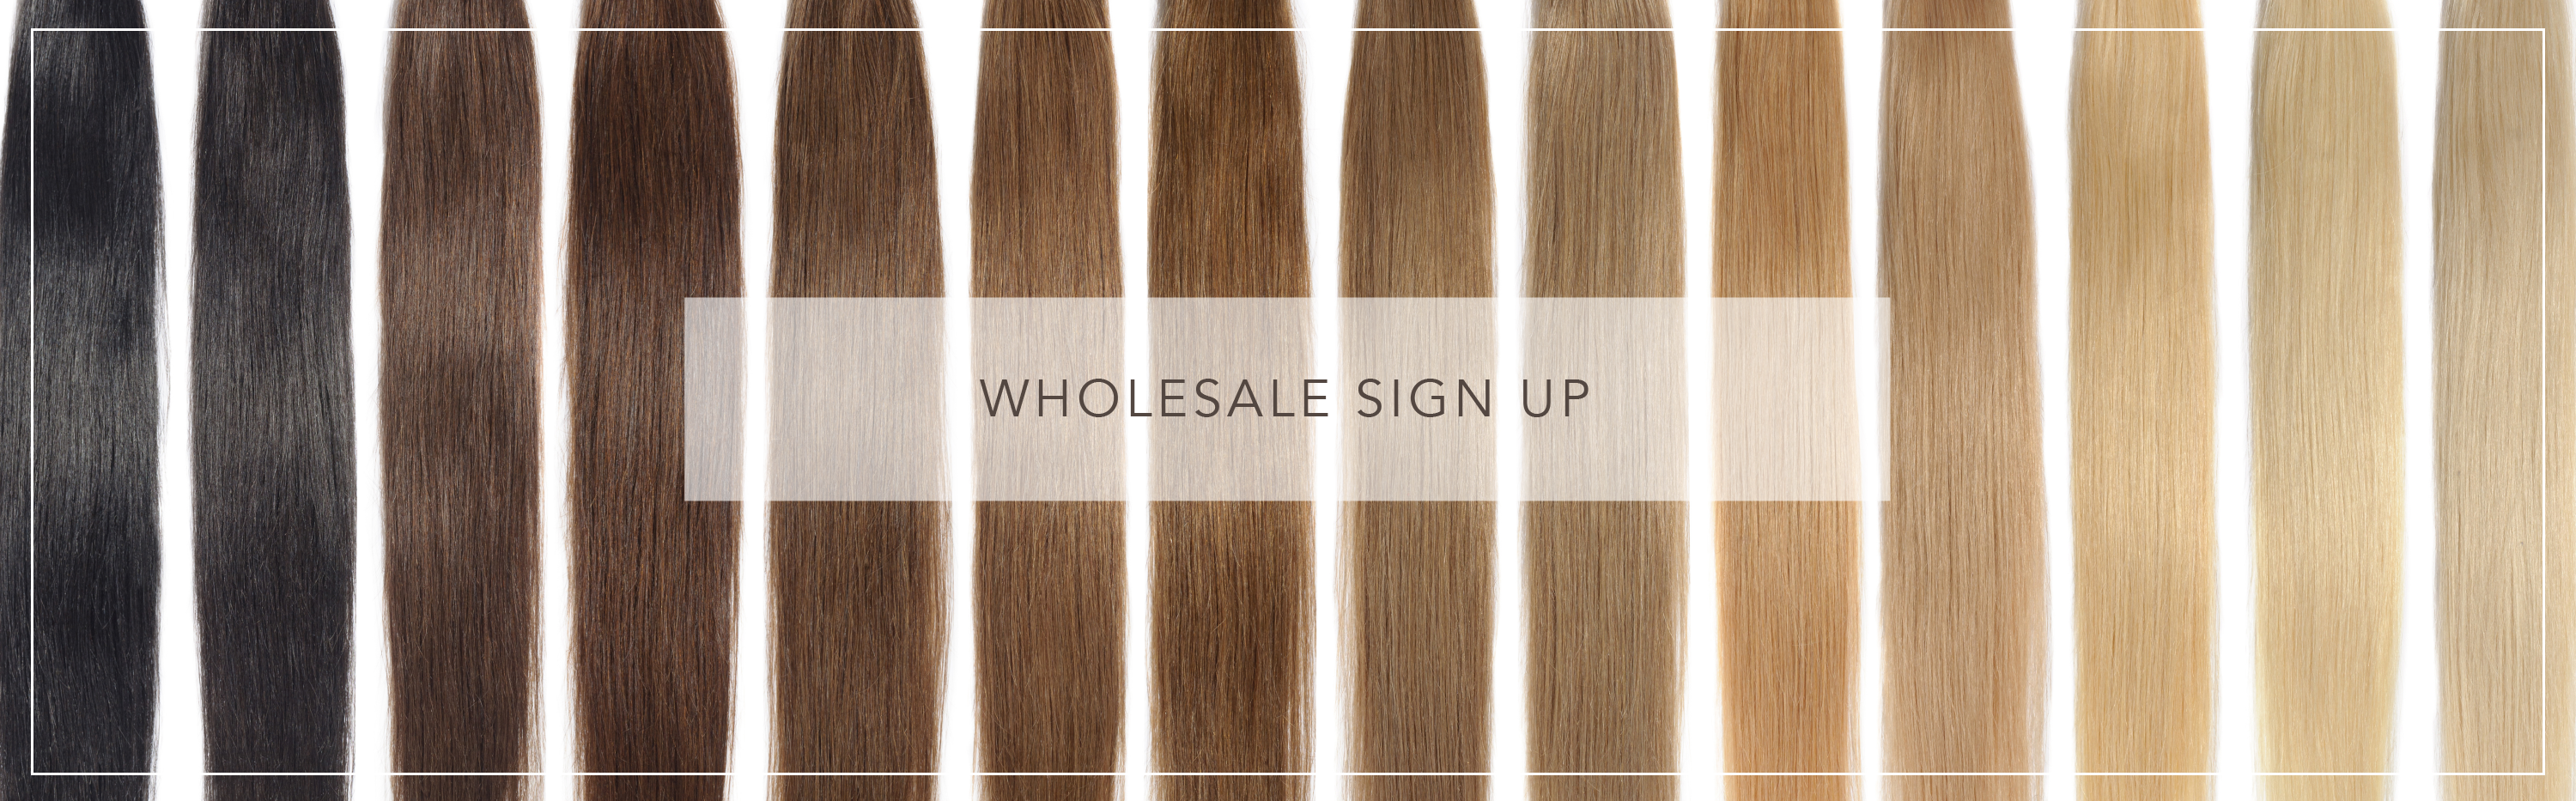 wholesale-sign-up-2.png